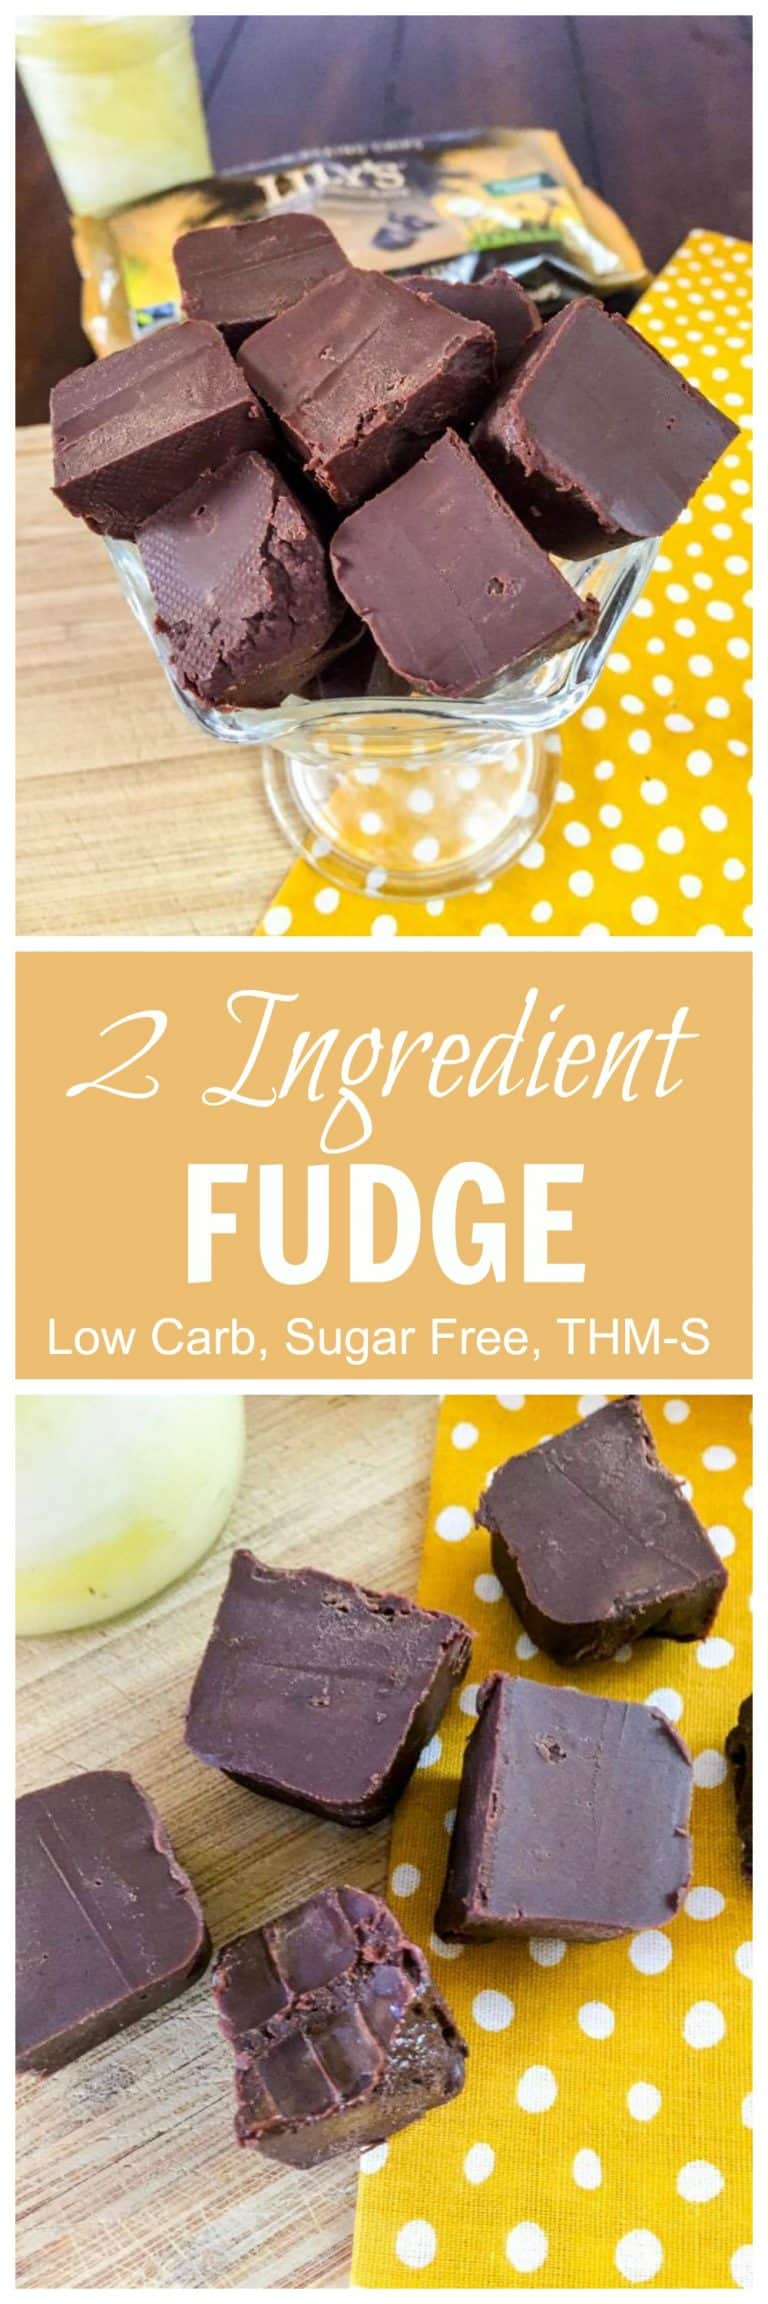 2 Ingredient Fudge Low Carb Sugar Free Thm S My